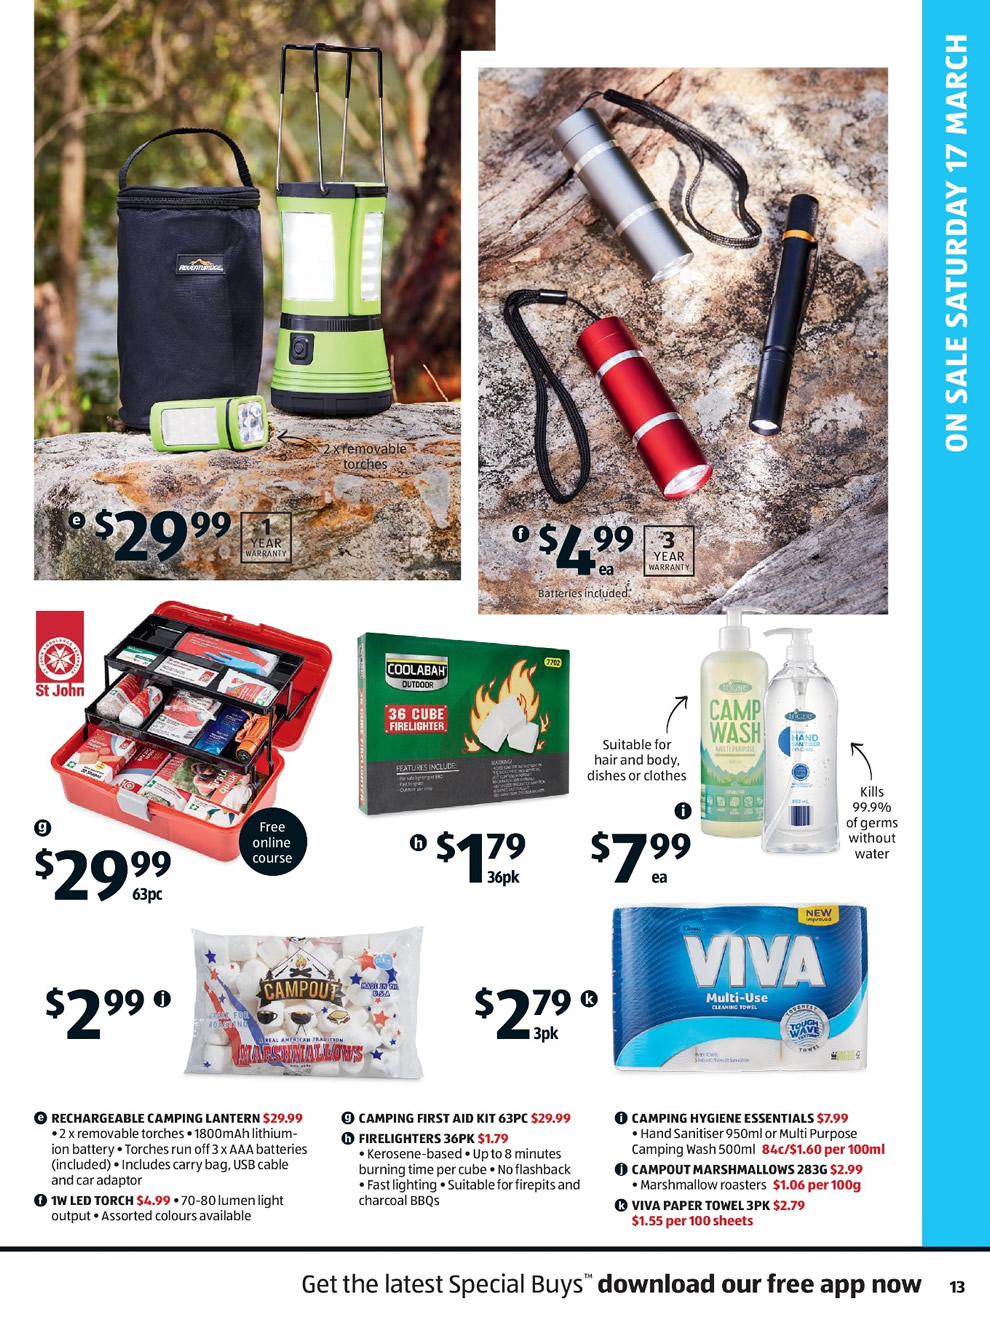 Aldi Catalogue: 14th of March to 20th of March 2018 - Page 13